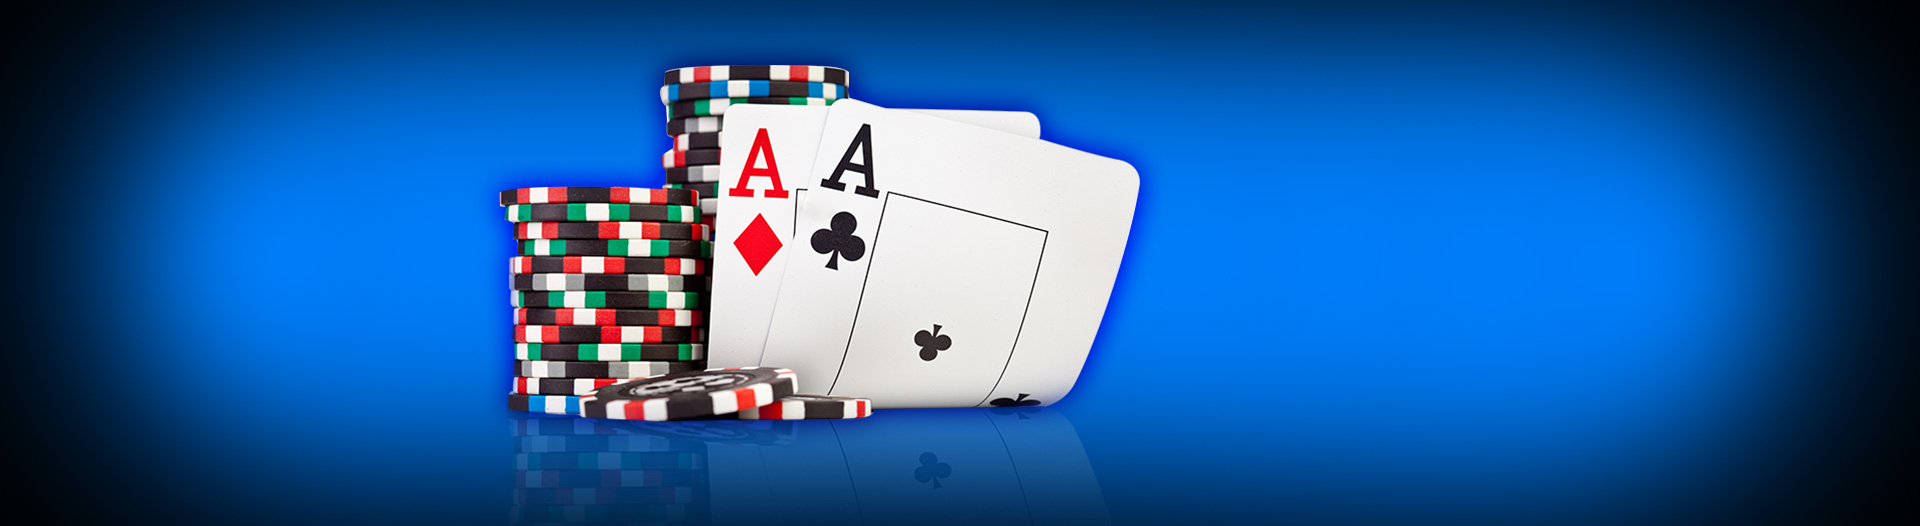 888 casino free download